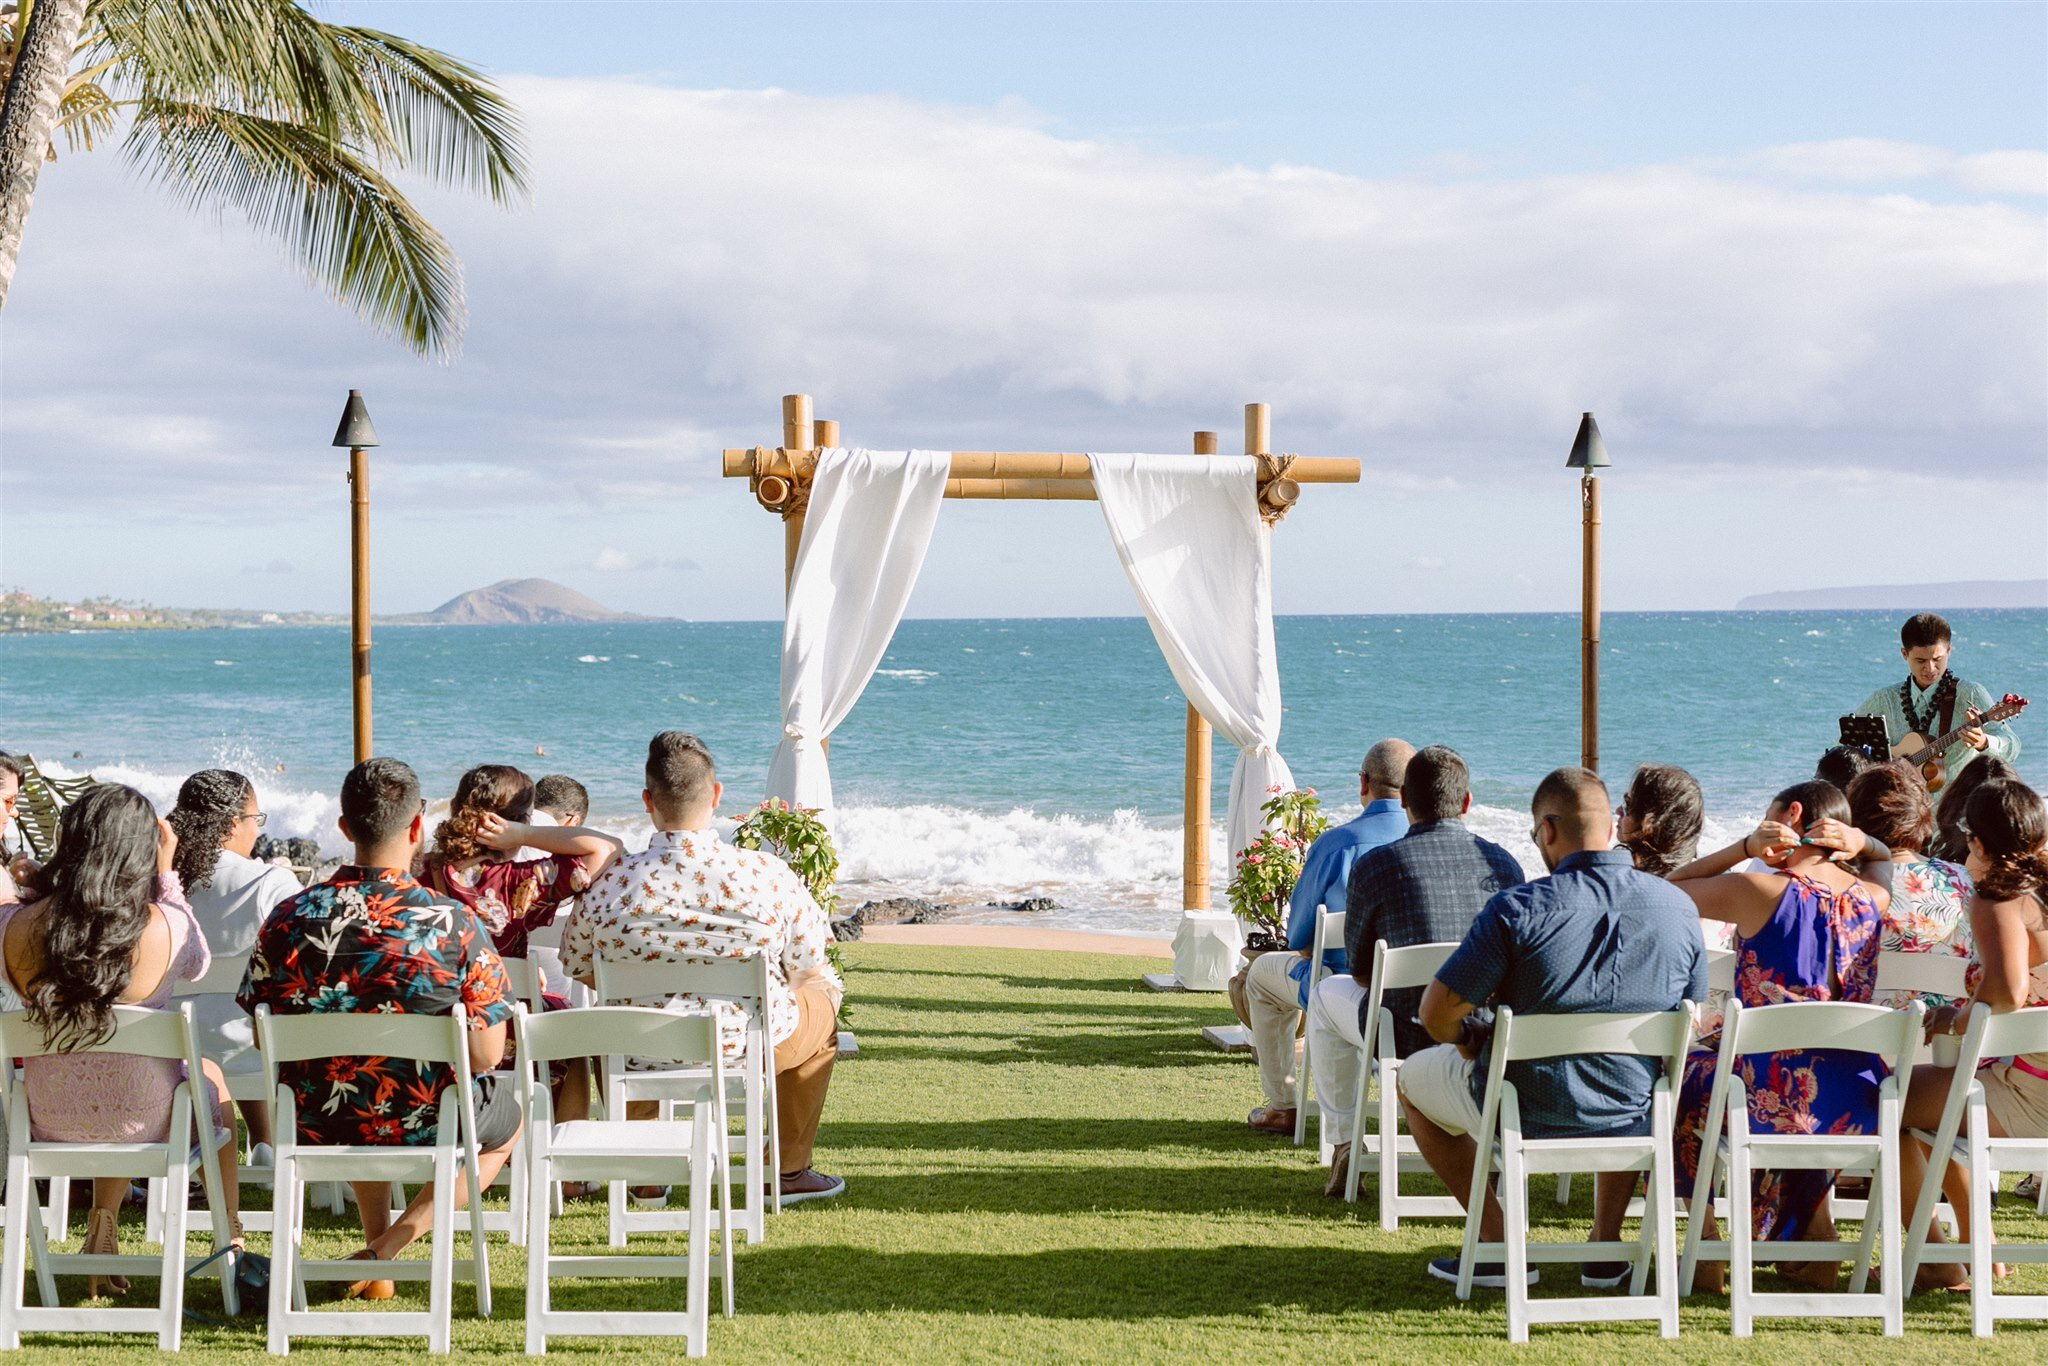 5-Palms-Restaurant-Maui-Hawaii-Wedding-ceremony-palm-trees-ocean-view